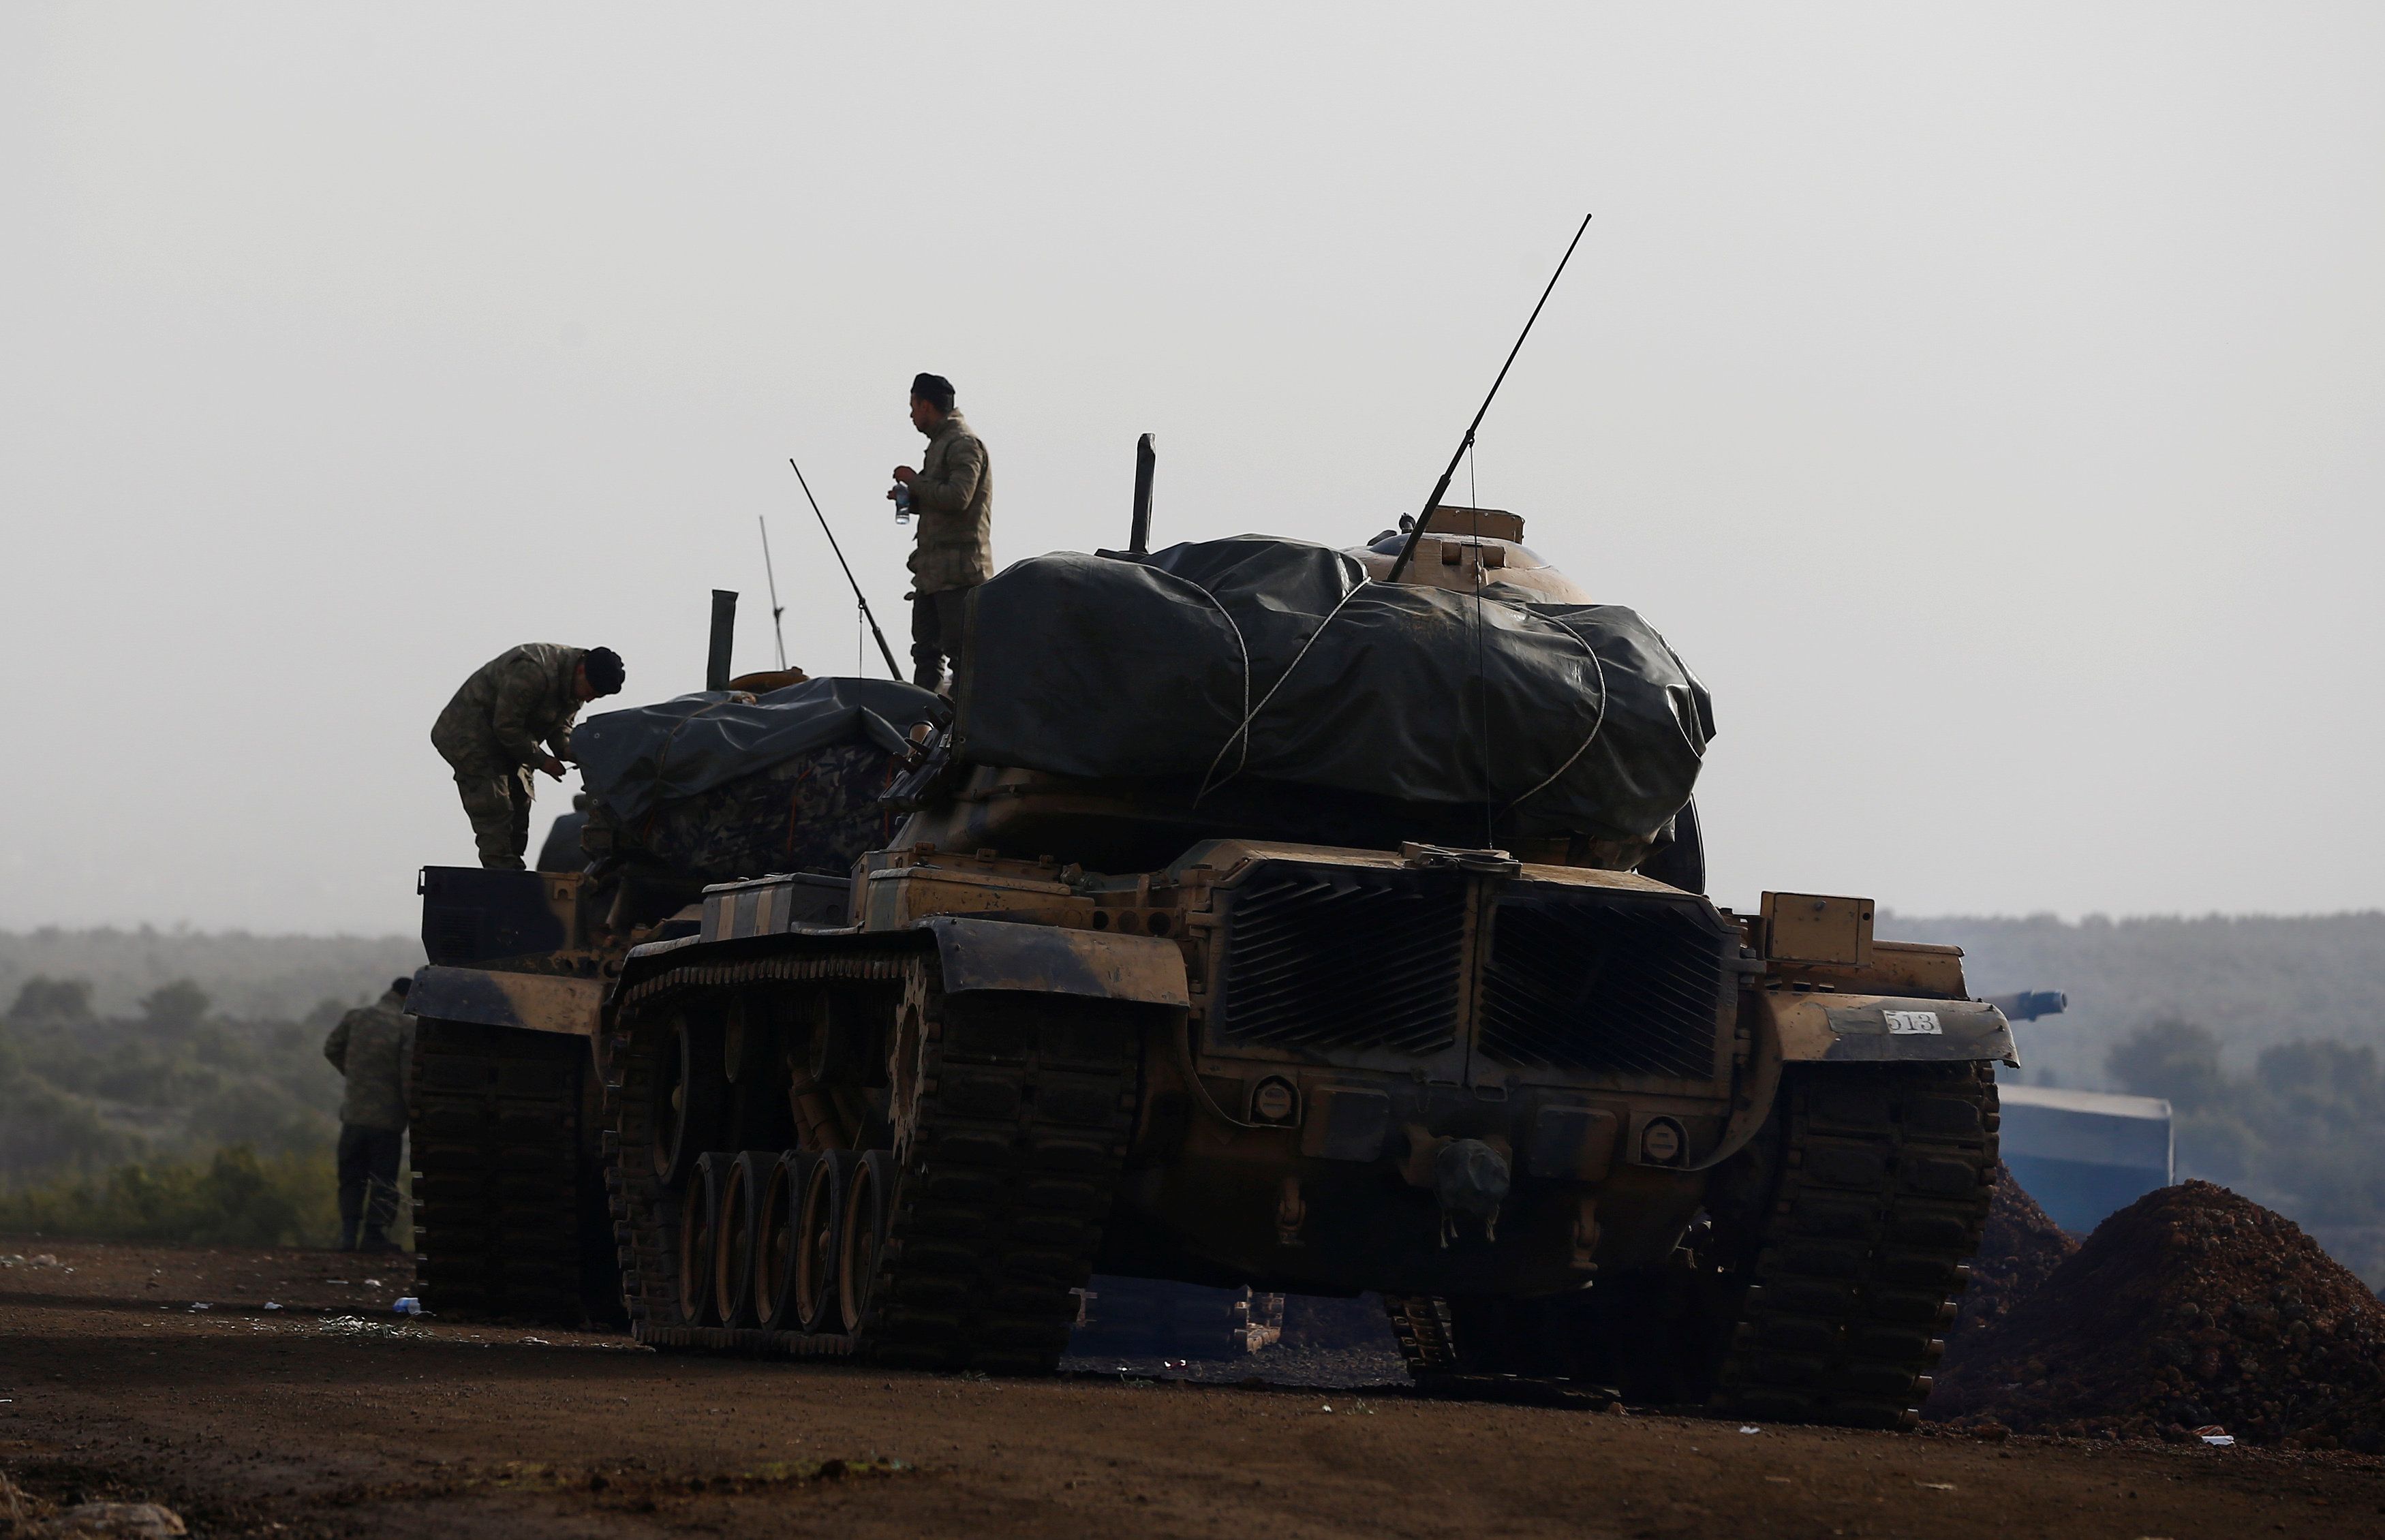 Turkish soldiers stand on tanks in a village on the Turkish-Syrian border in Gaziantep province, Turkey January 22, 2018.